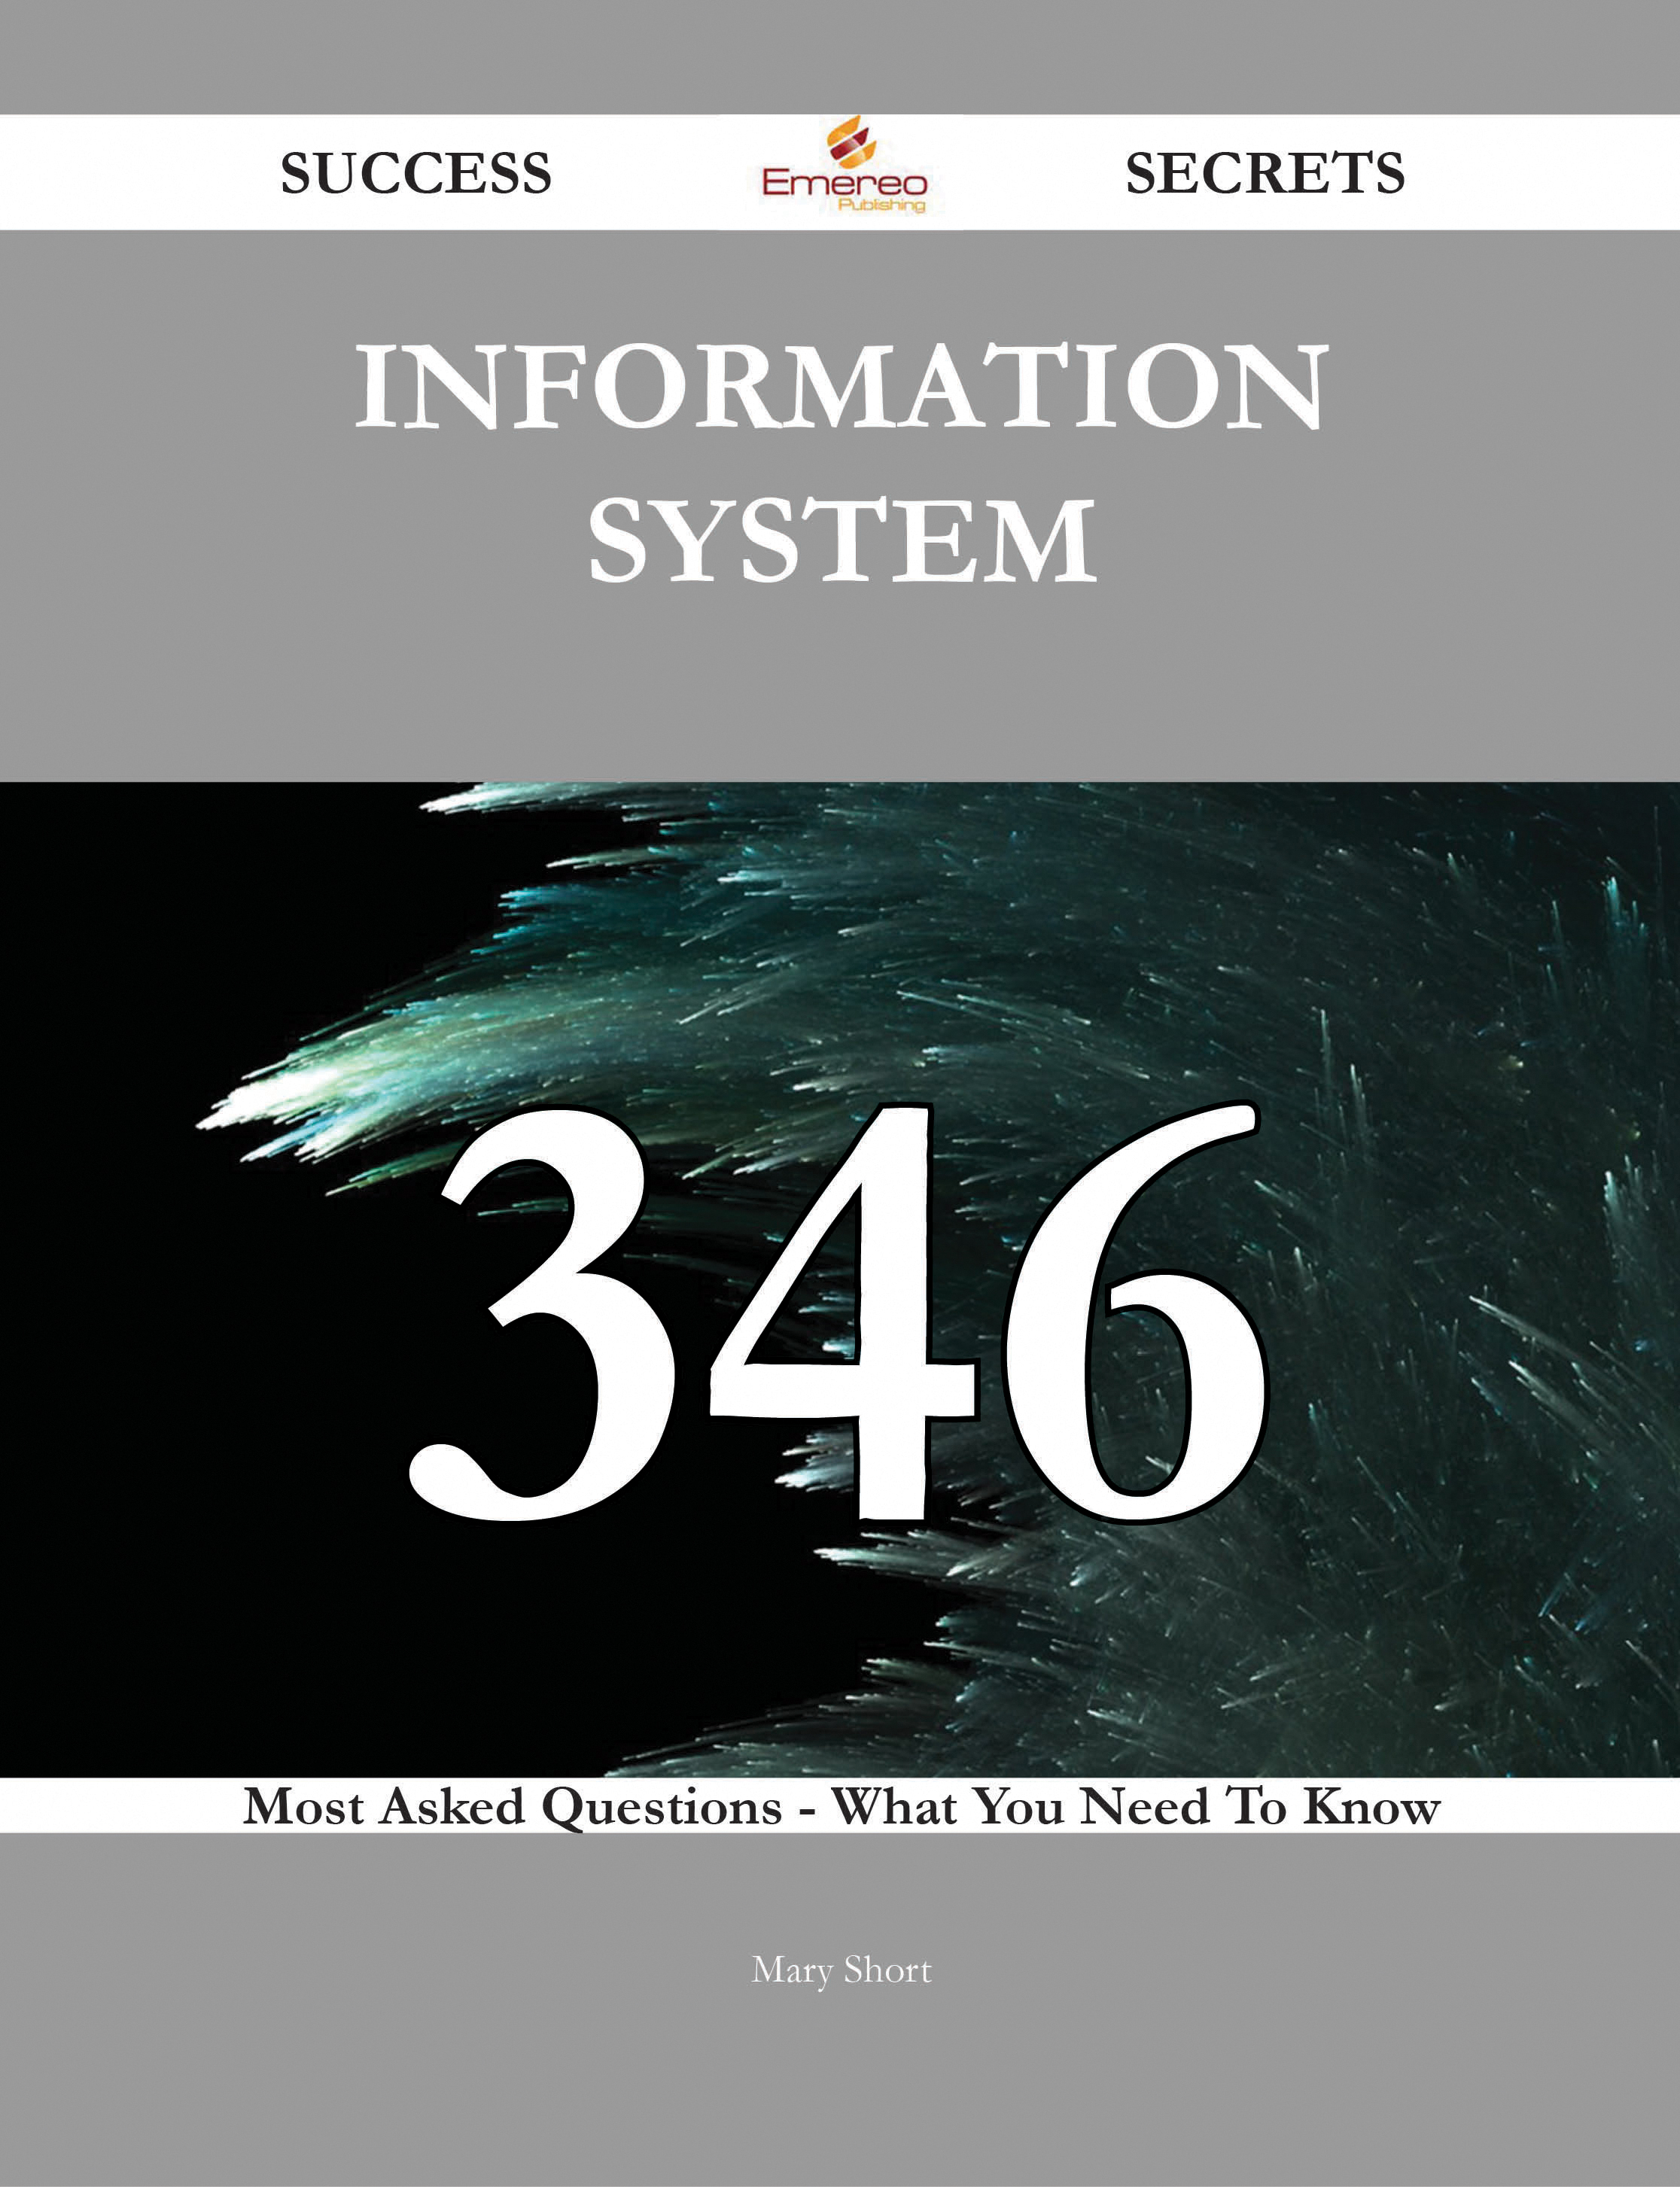 information system 346 Success Secrets - 346 Most Asked Questions On information system - What You Need To Know